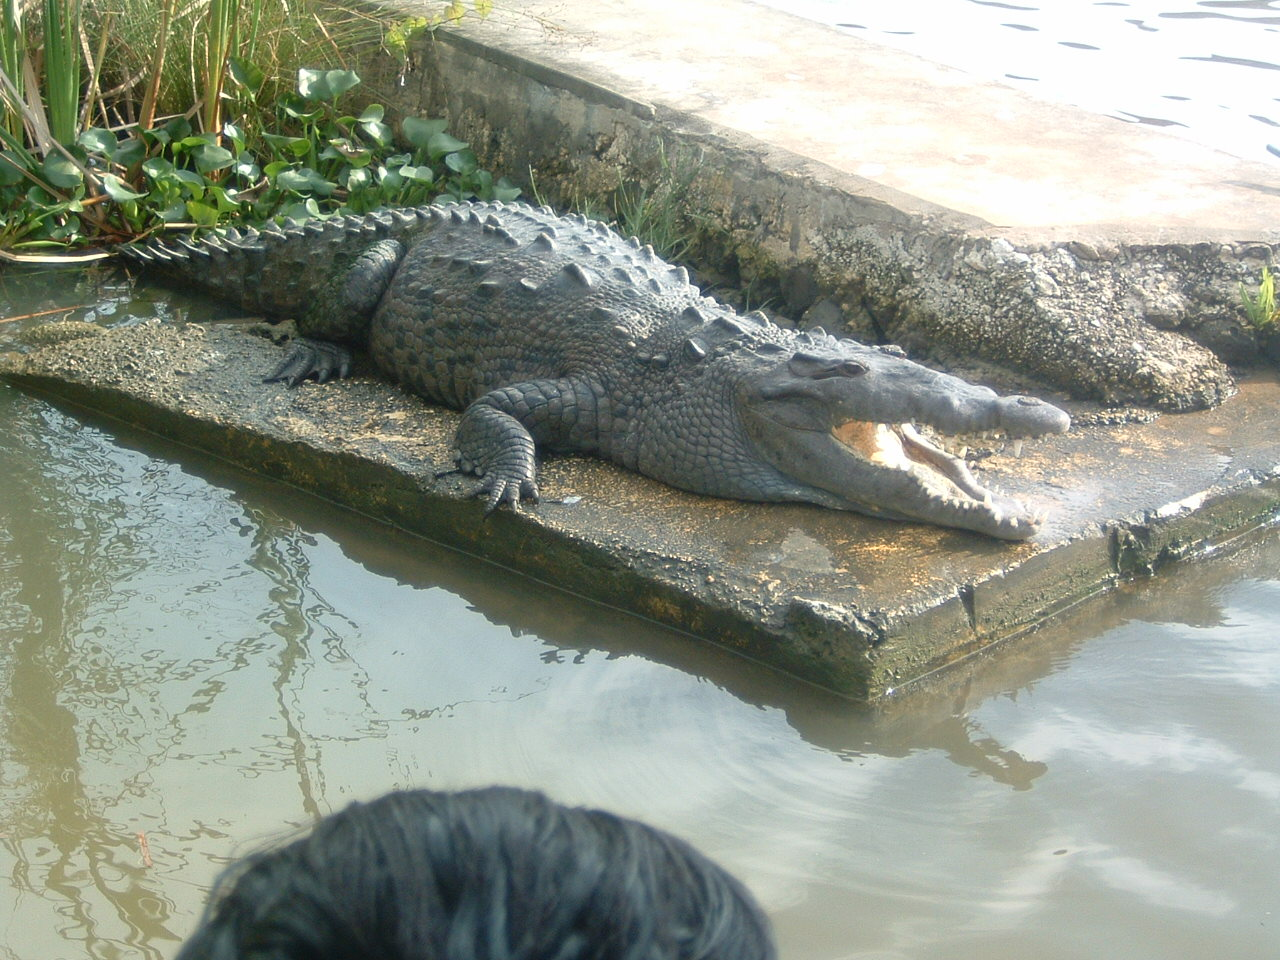 Crocodile sun bathing